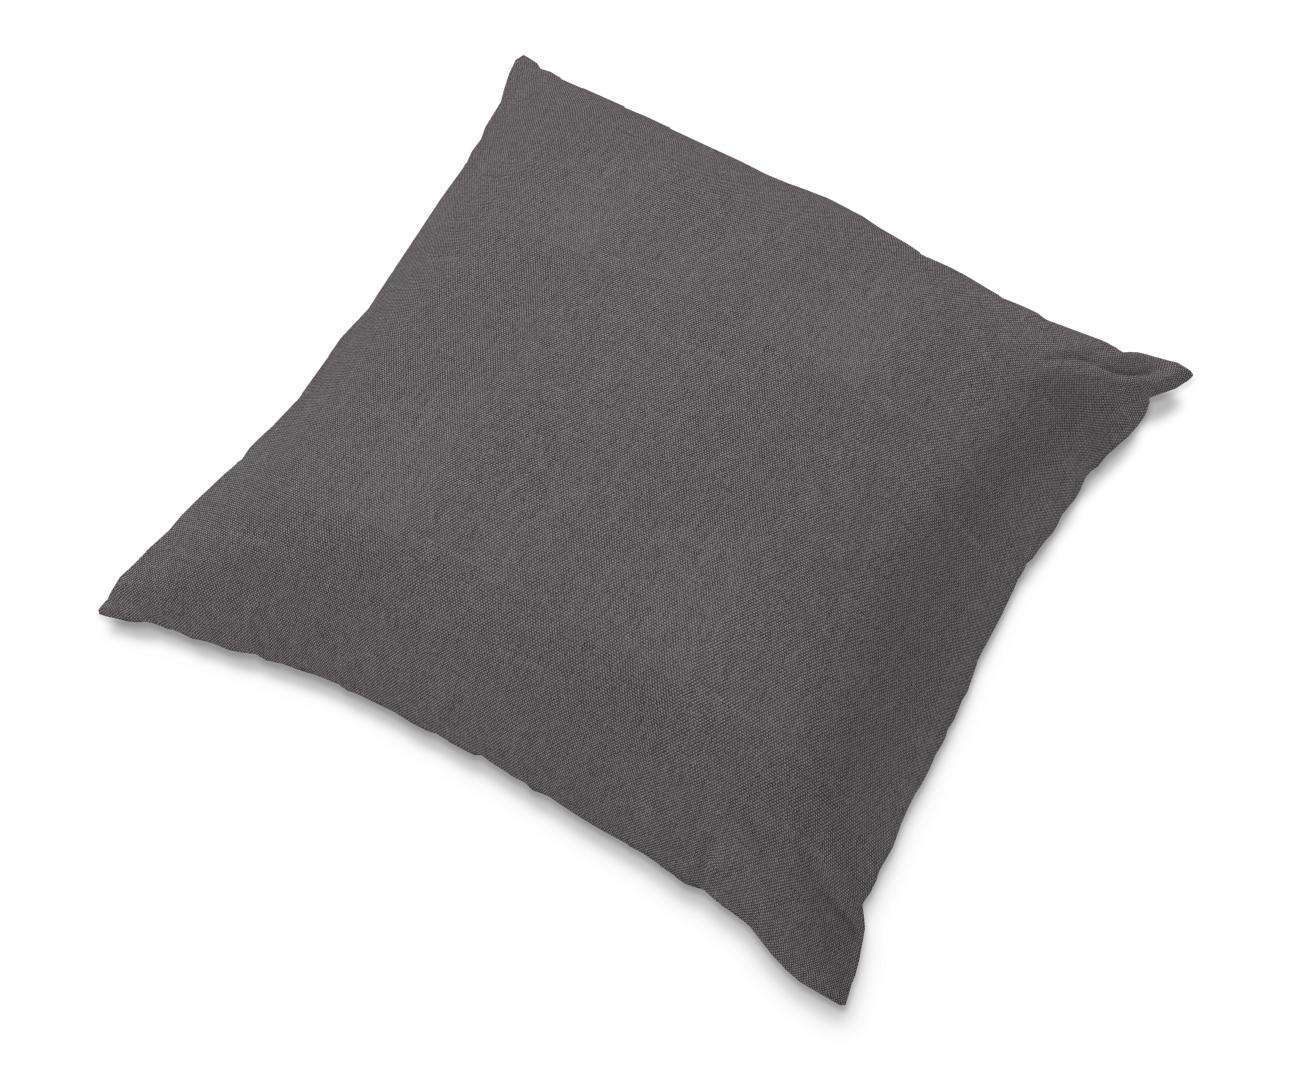 Tomelilla cushion cover 55 x 55 cm (22 x 22 inch) in collection Etna, fabric: 705-35